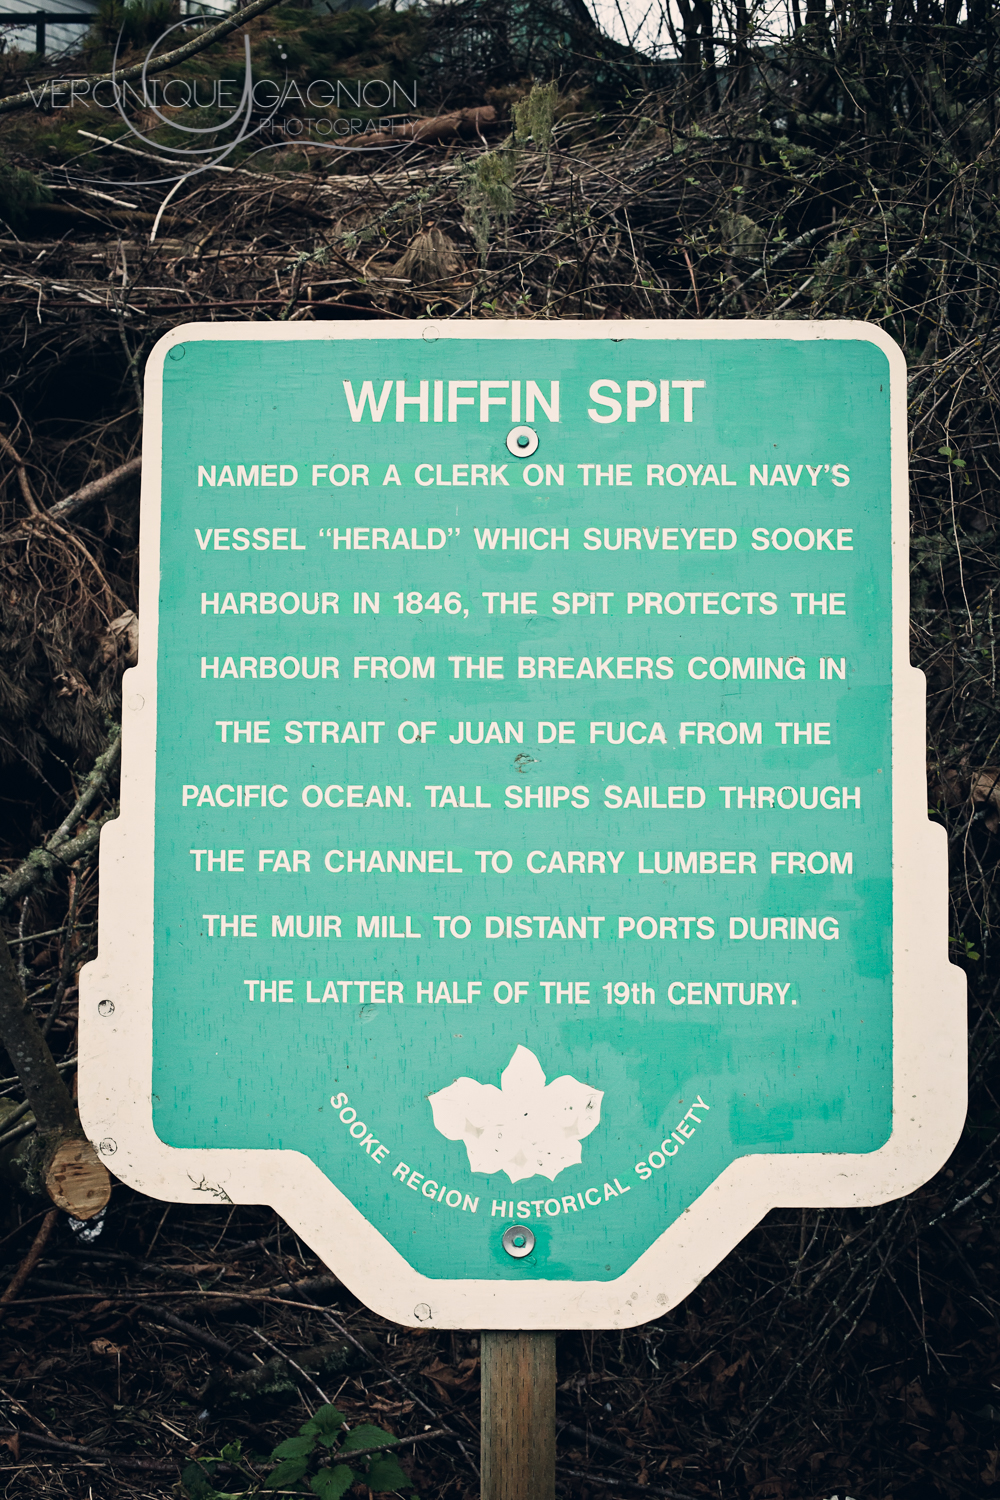 "Whiffin Spit: Named for a clerk on the royal navy's vessel ""Herald"" which surveyed Sooke Harbour in 1846, the spit protects the harbour from the breakers coming in the Straight of Juan de Fuca from the Pacific Ocean. Tall ships sailed through the far channel to carry lumber from the muir to distant ports during the latter half of the 19th century."